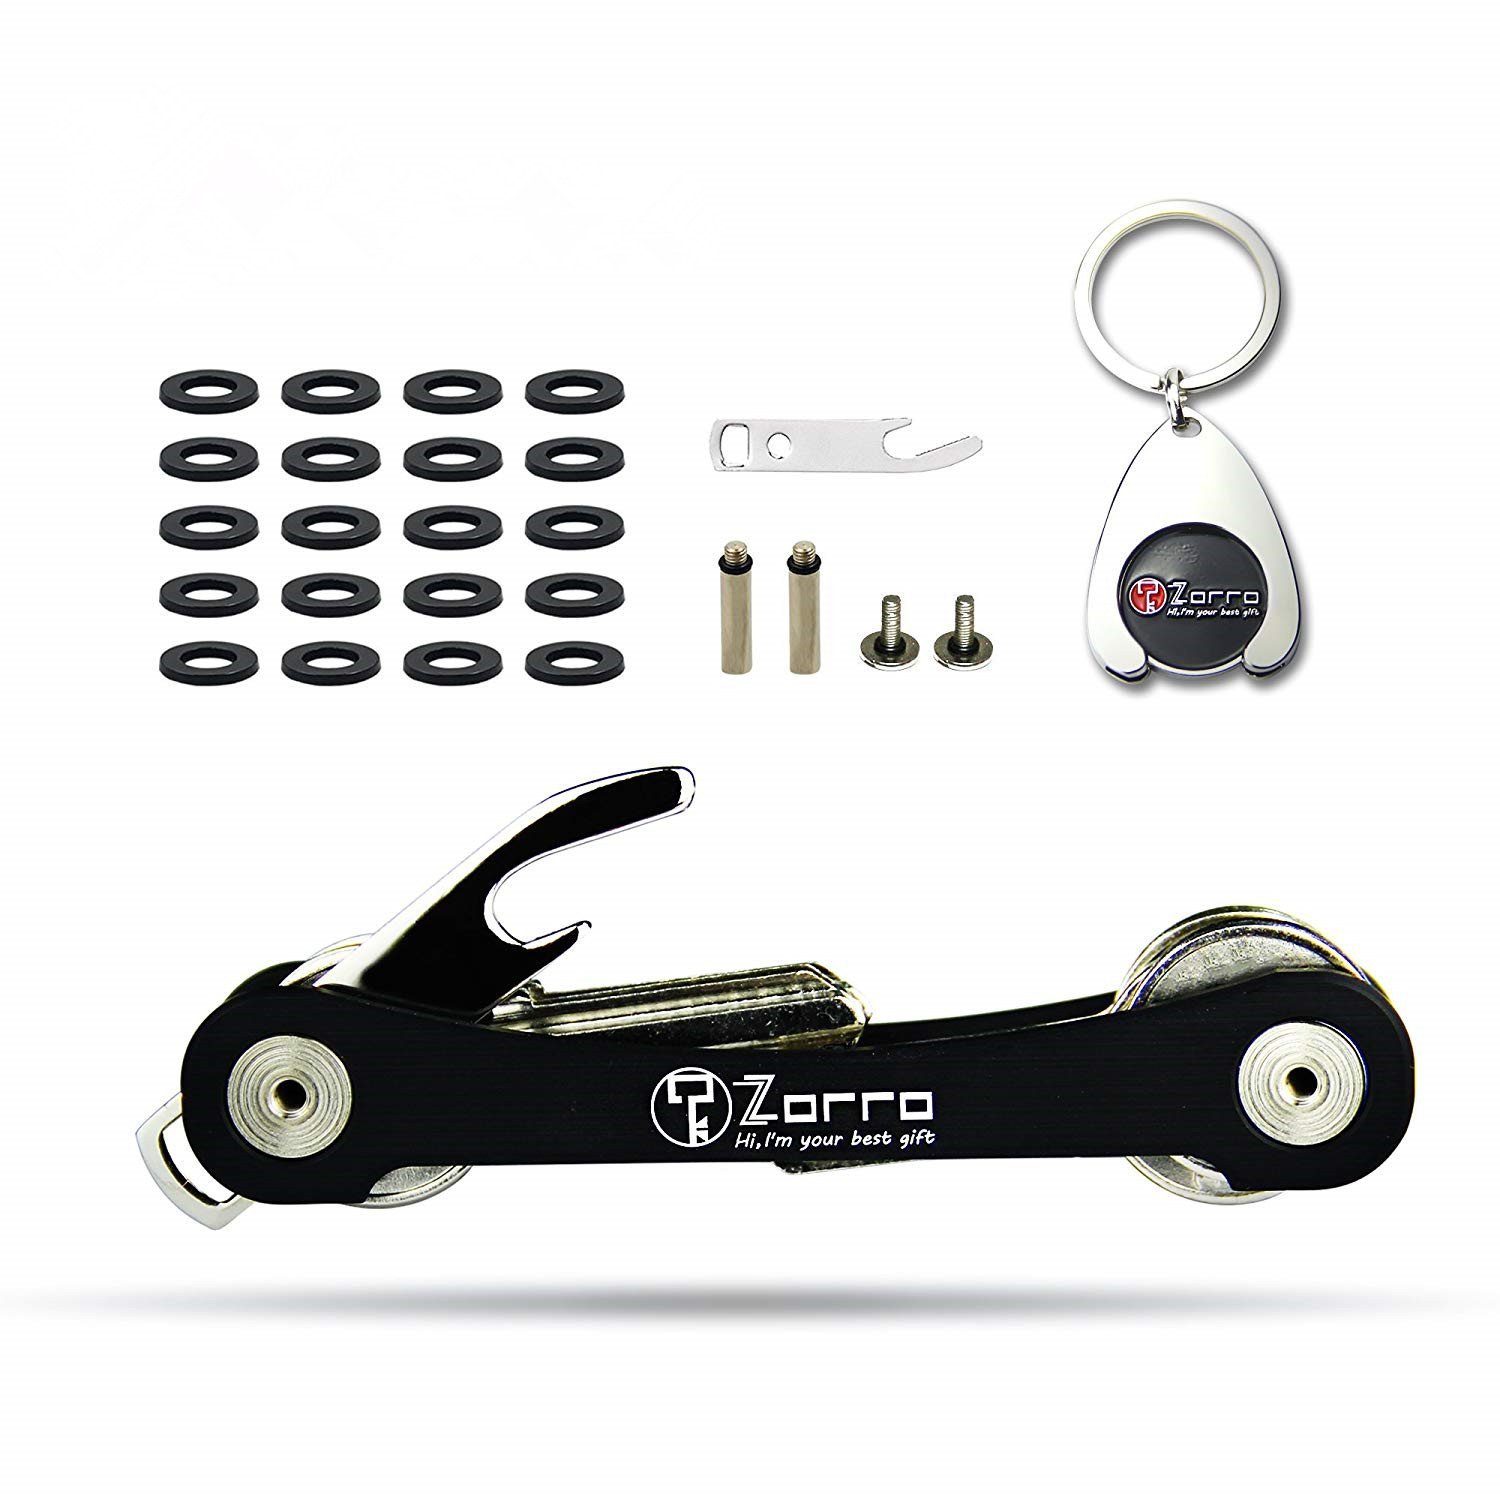 Smart Compact Key Holder keychain By Zorro- Made Of Aircraft Aluminum Alloy - Smart Pocket Key Organizer Up To 18 Keys- Lightweight, Strong (Black) 2A02